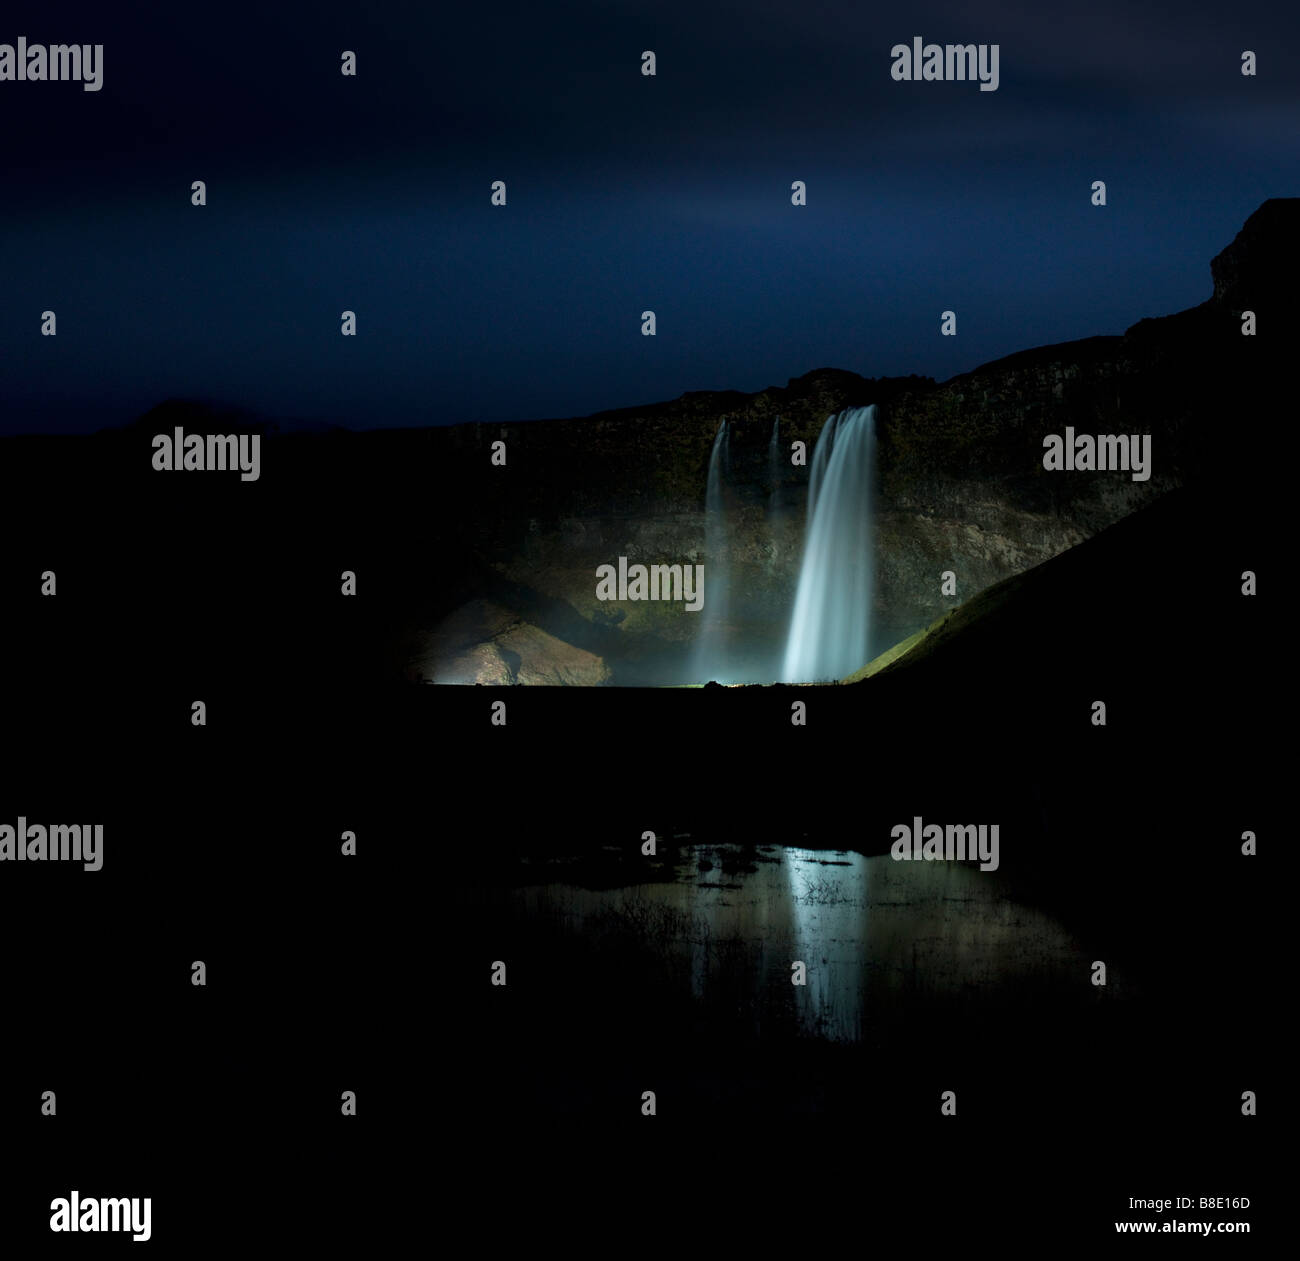 Seljalandsfoss Waterfall, Iceland - Stock Image